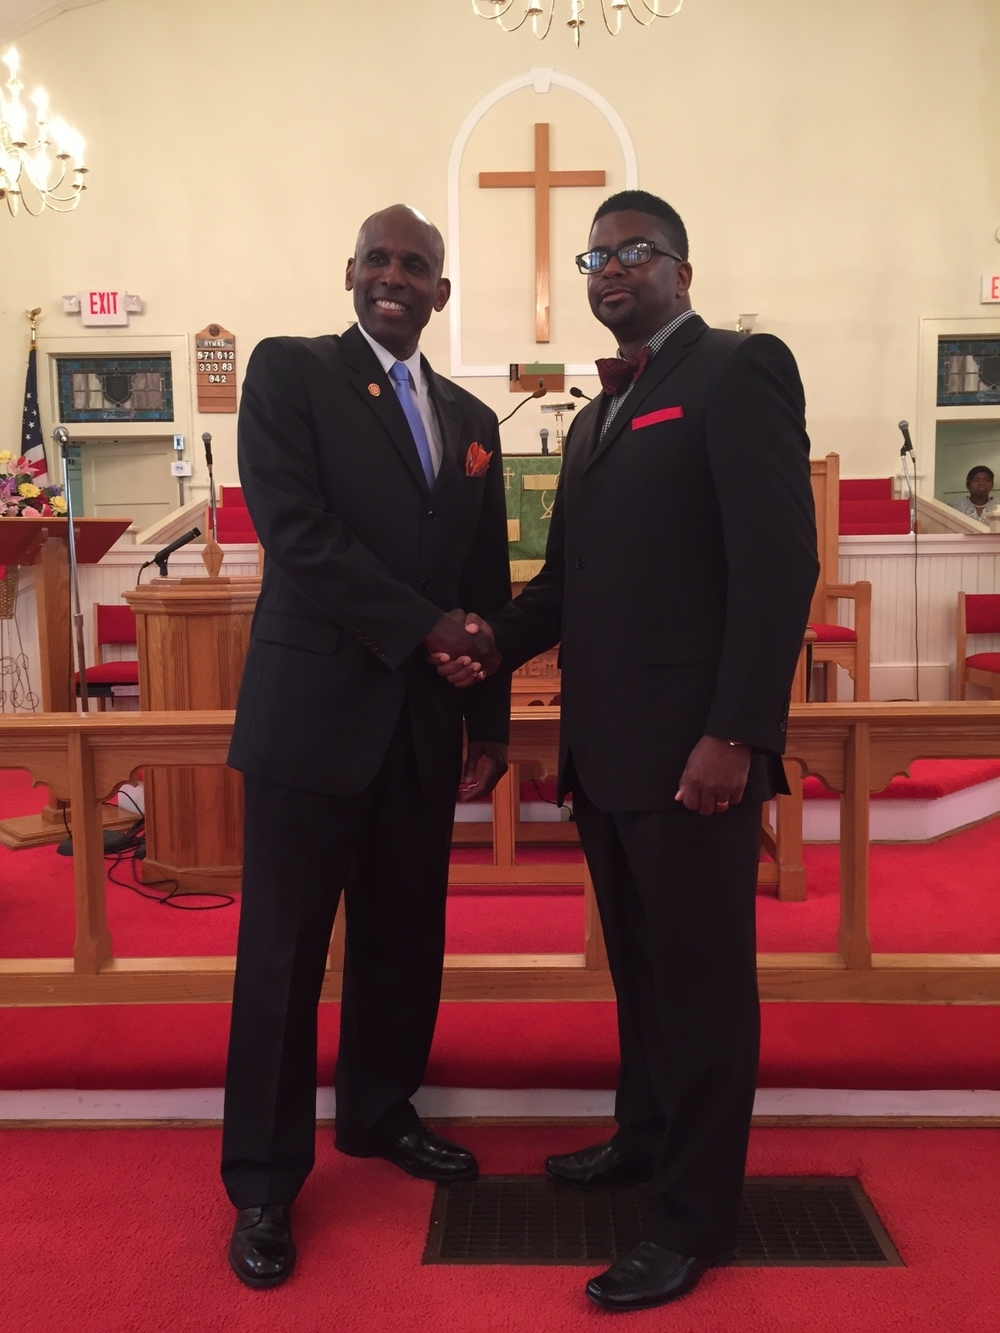 Carl with Pastor Evans after speaking engagement